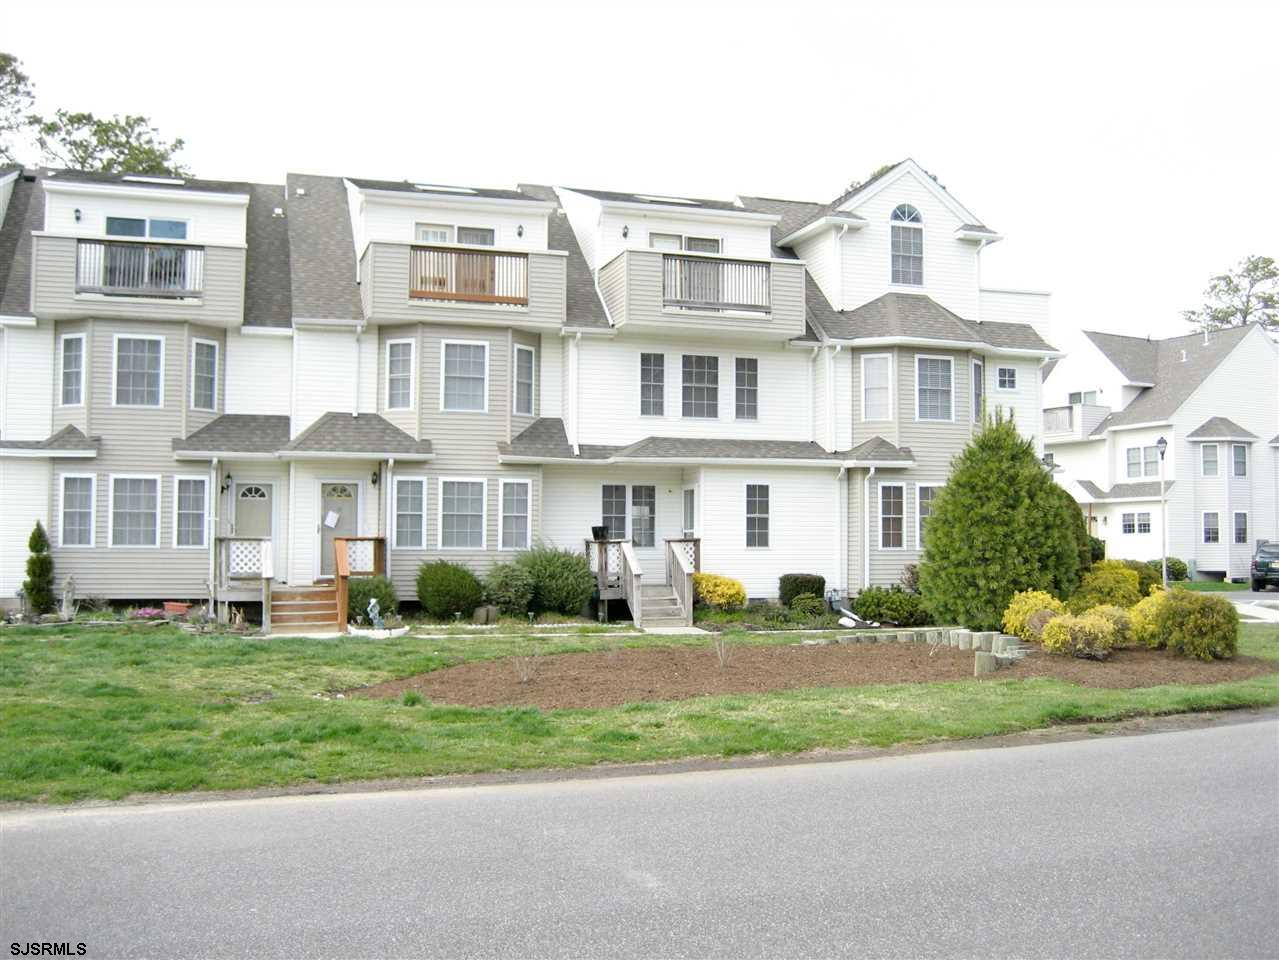 19 Patcong Dr